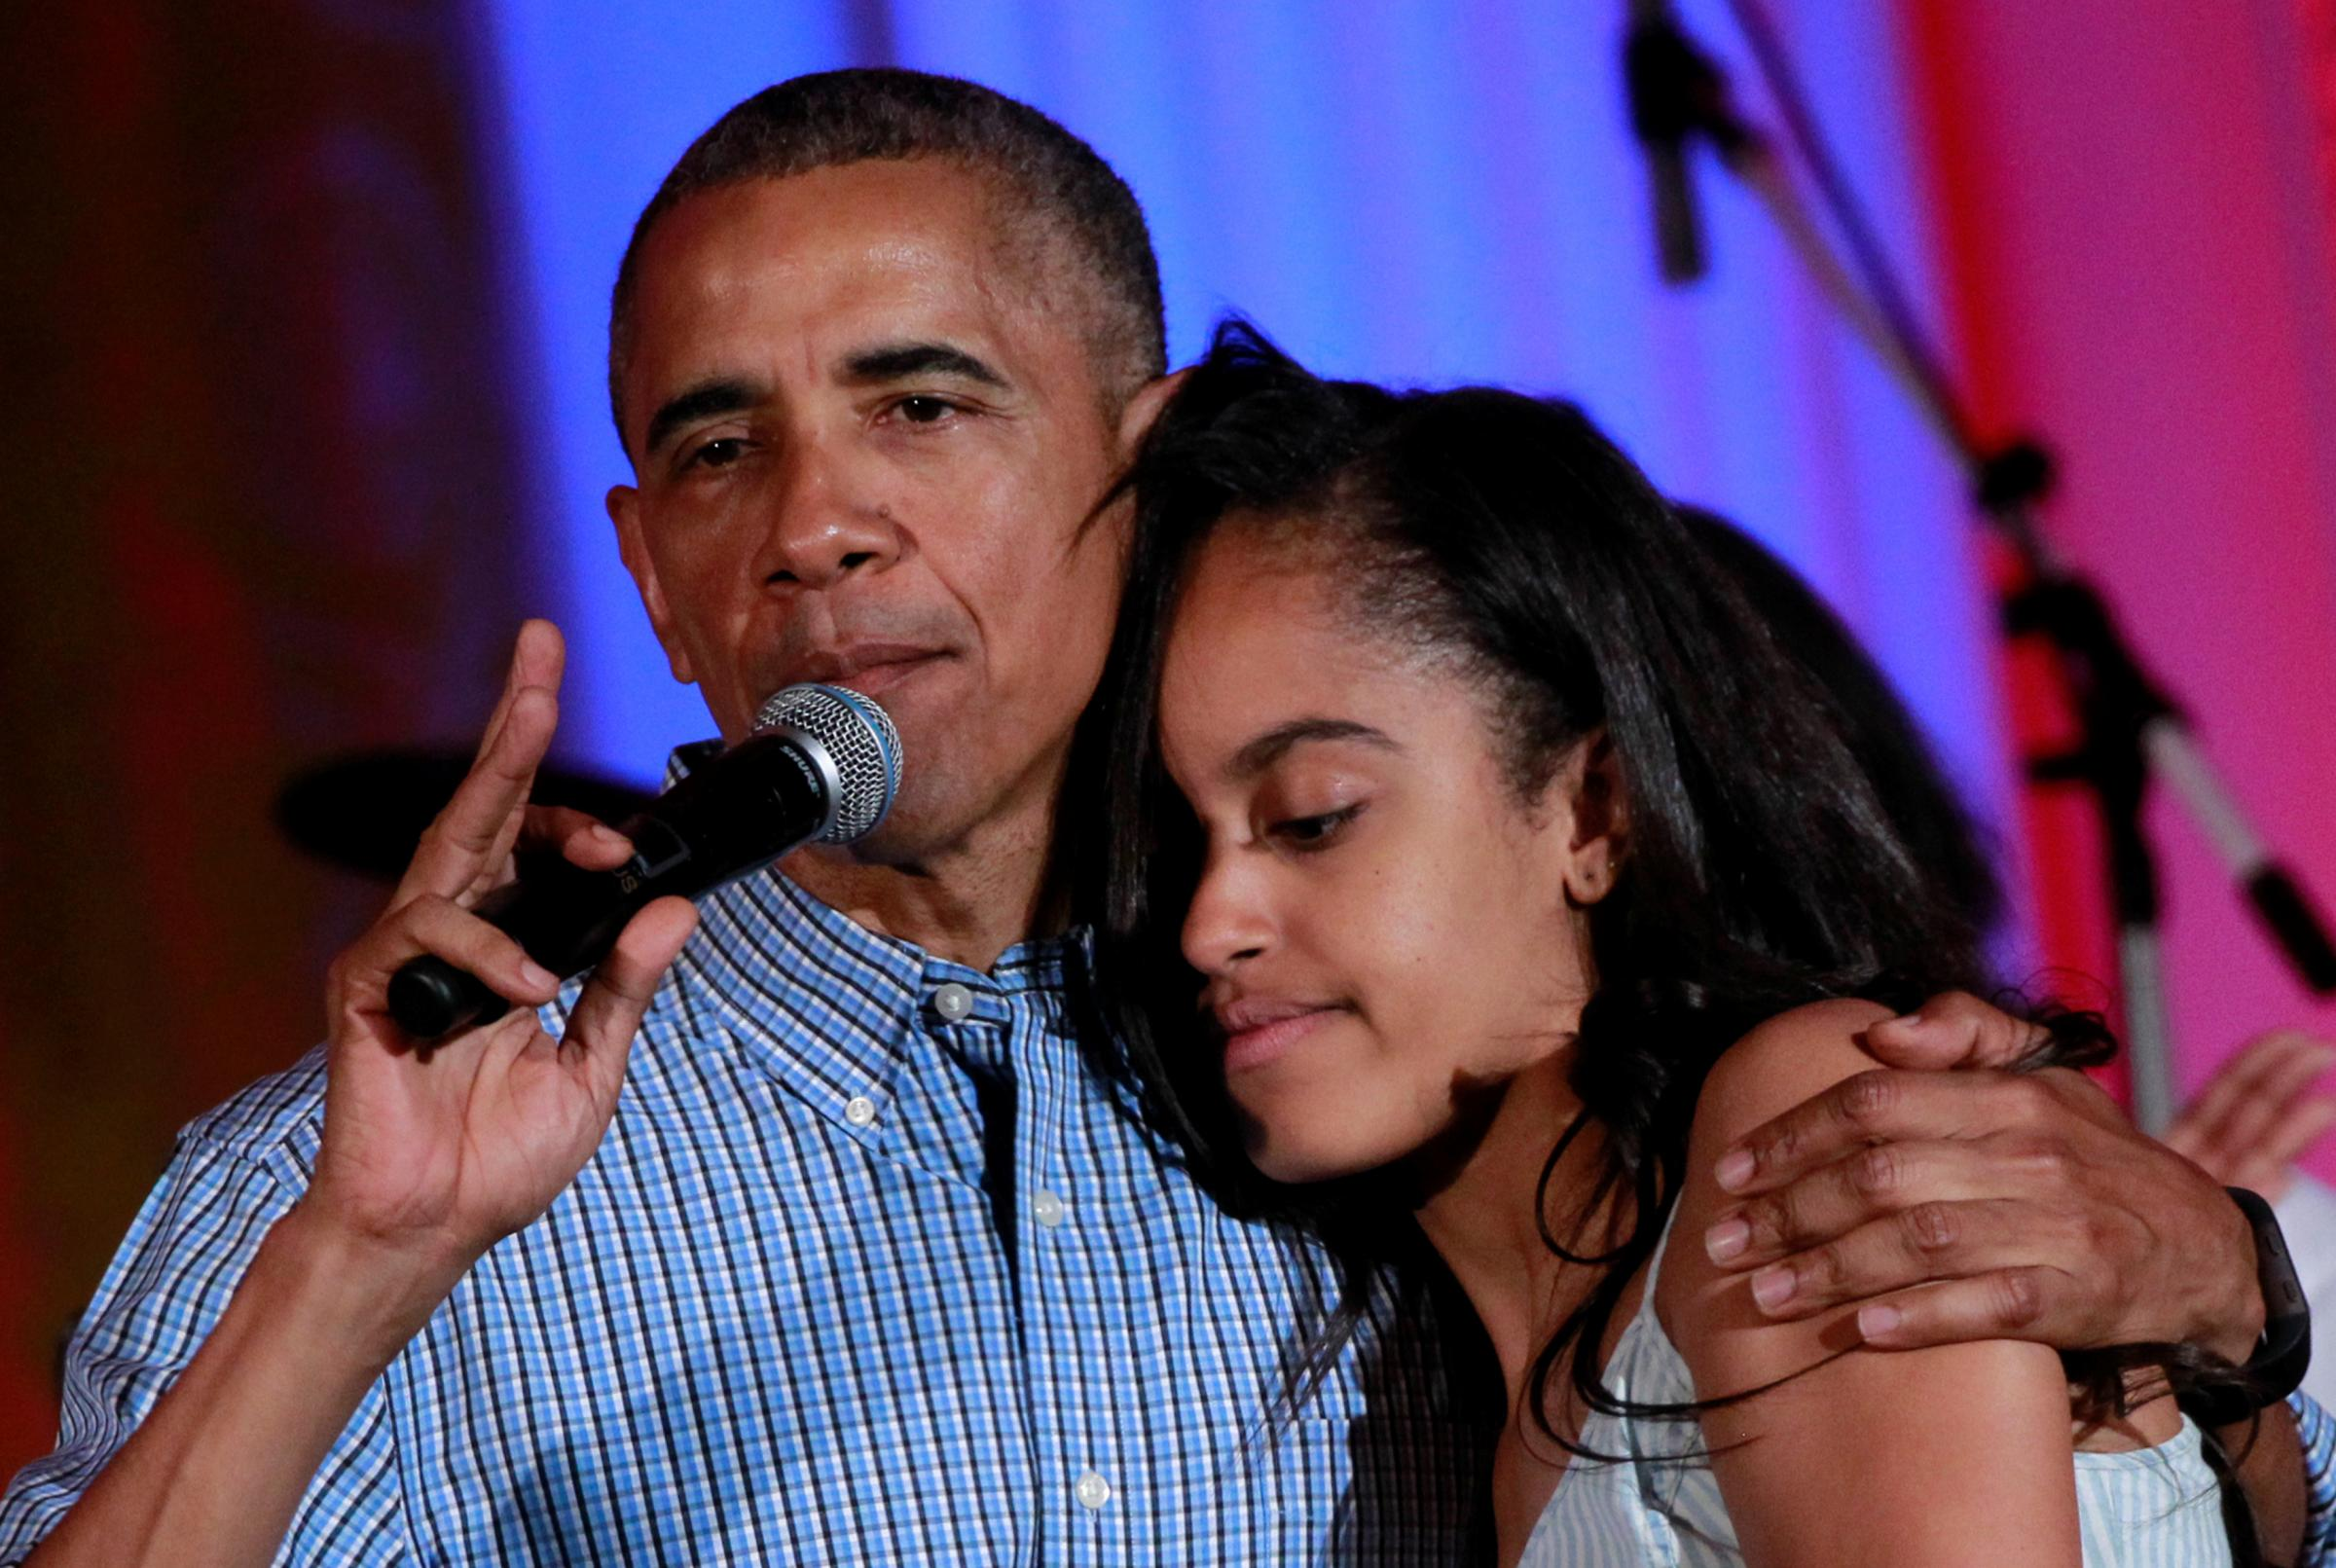 Malia Obama: il twerking che sta facendo scandalo in rete